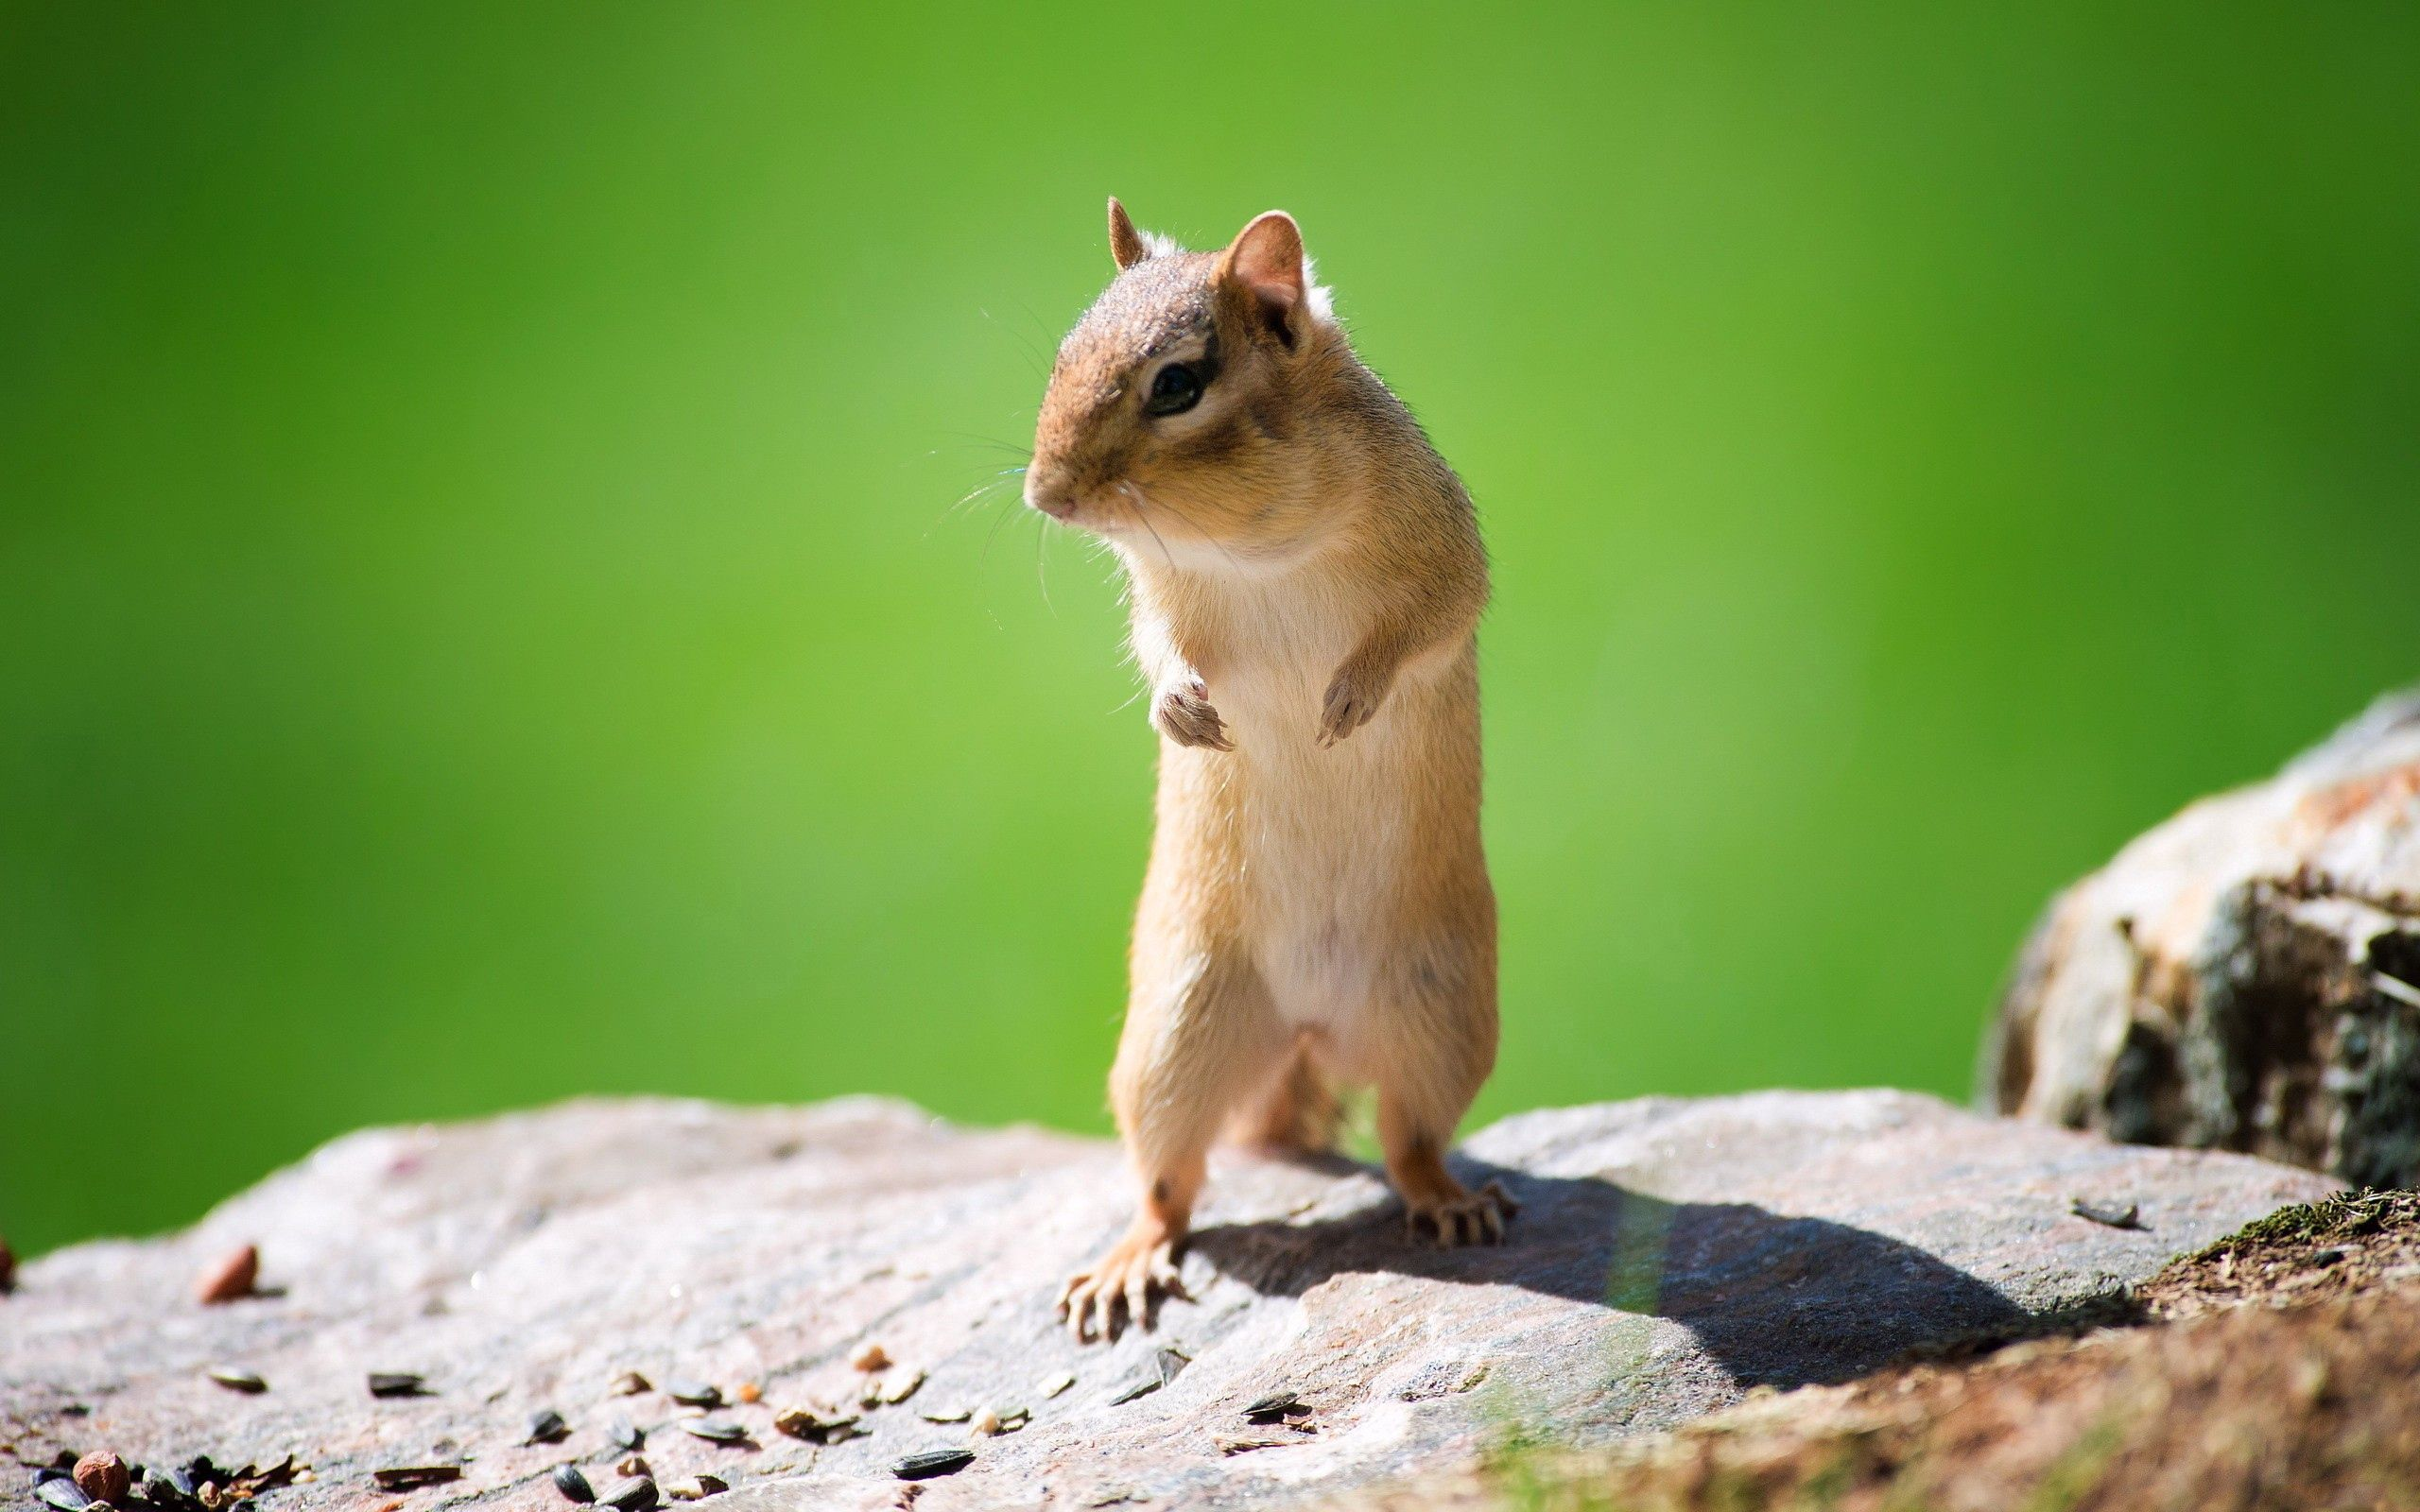 140954 download wallpaper Animals, Chipmunk, Muzzle, Animal, Stroll screensavers and pictures for free